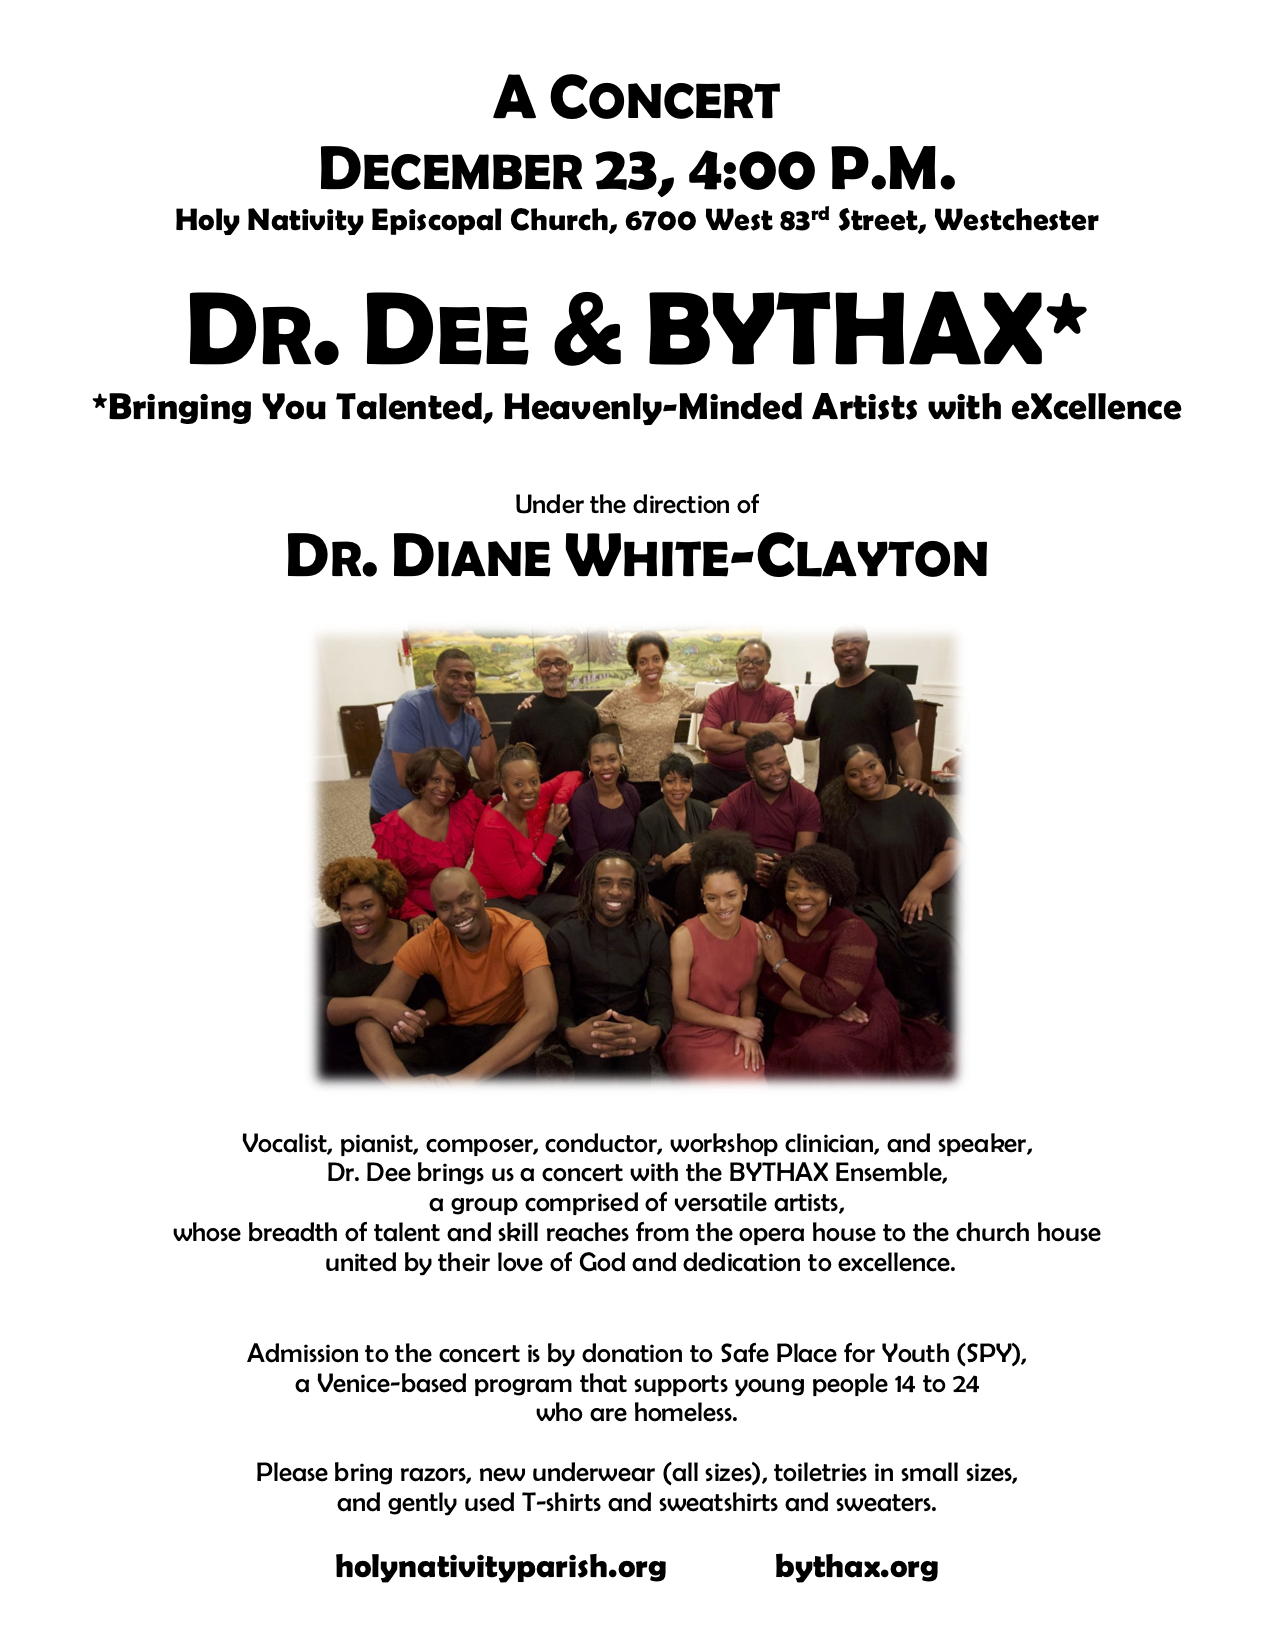 Dr. Dee and BYTHAX